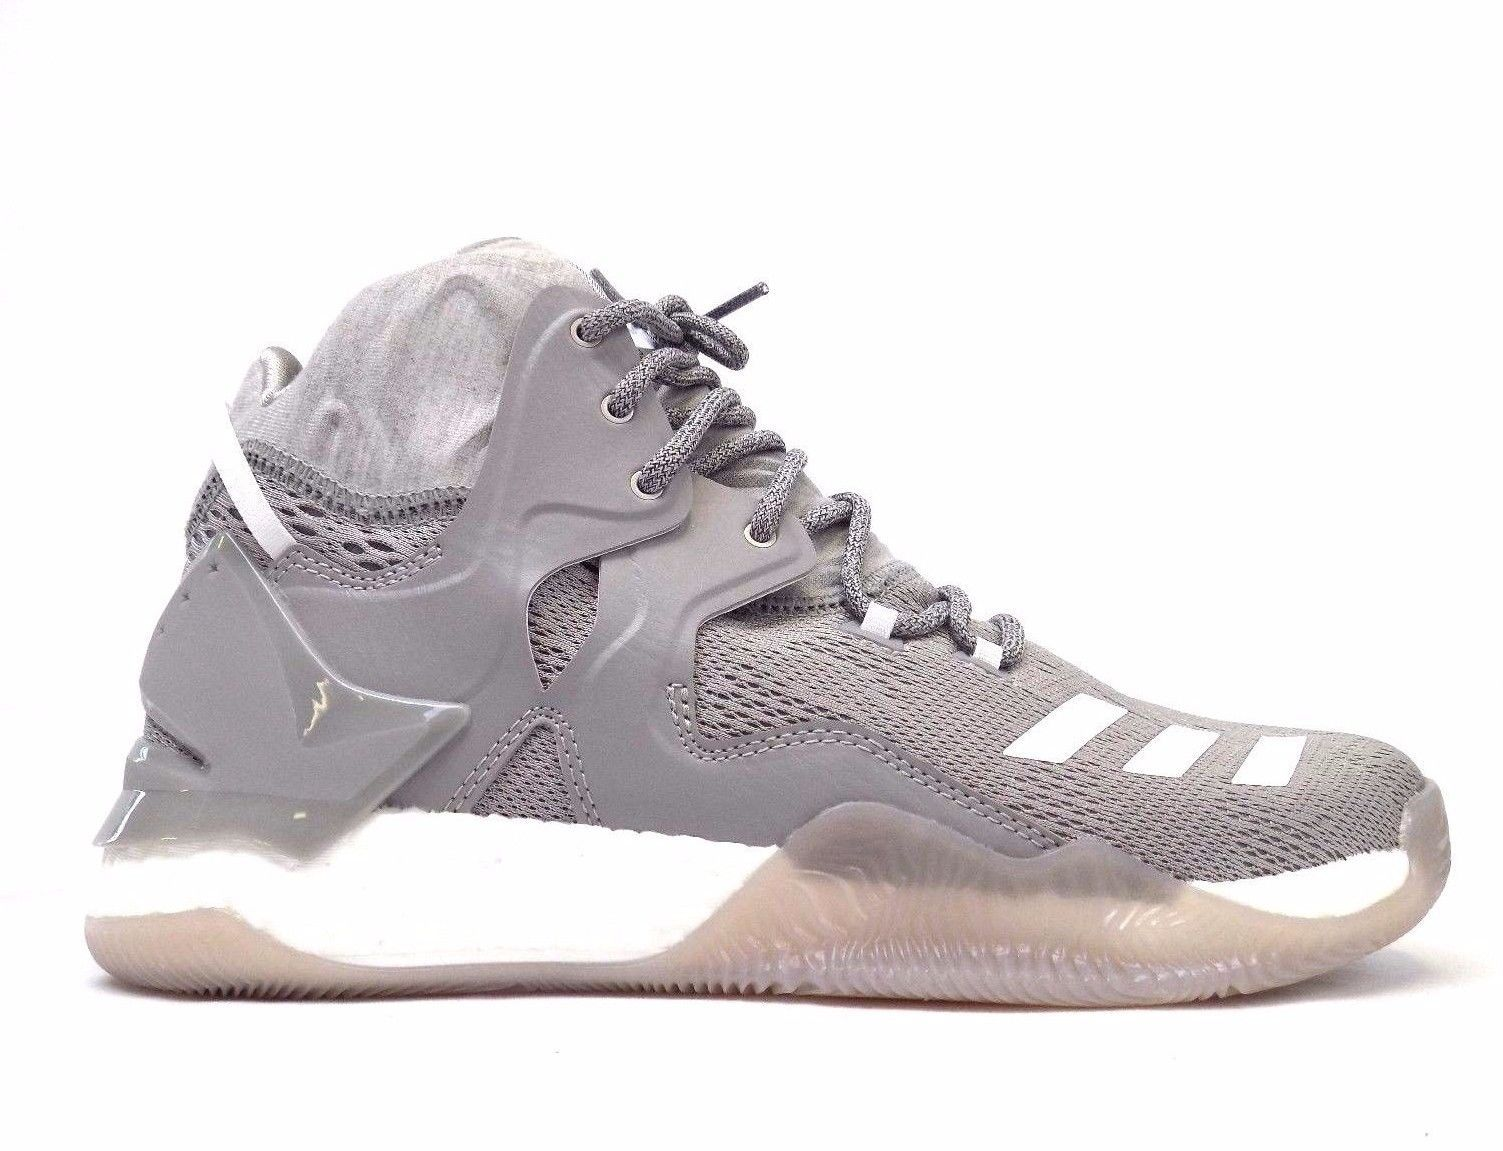 727b67007f47 NEW ADIDAS DERRICK D ROSE 7 B54134 GREY WHITE BASKETBALL SHOES BOOST  SNEAKERS 11